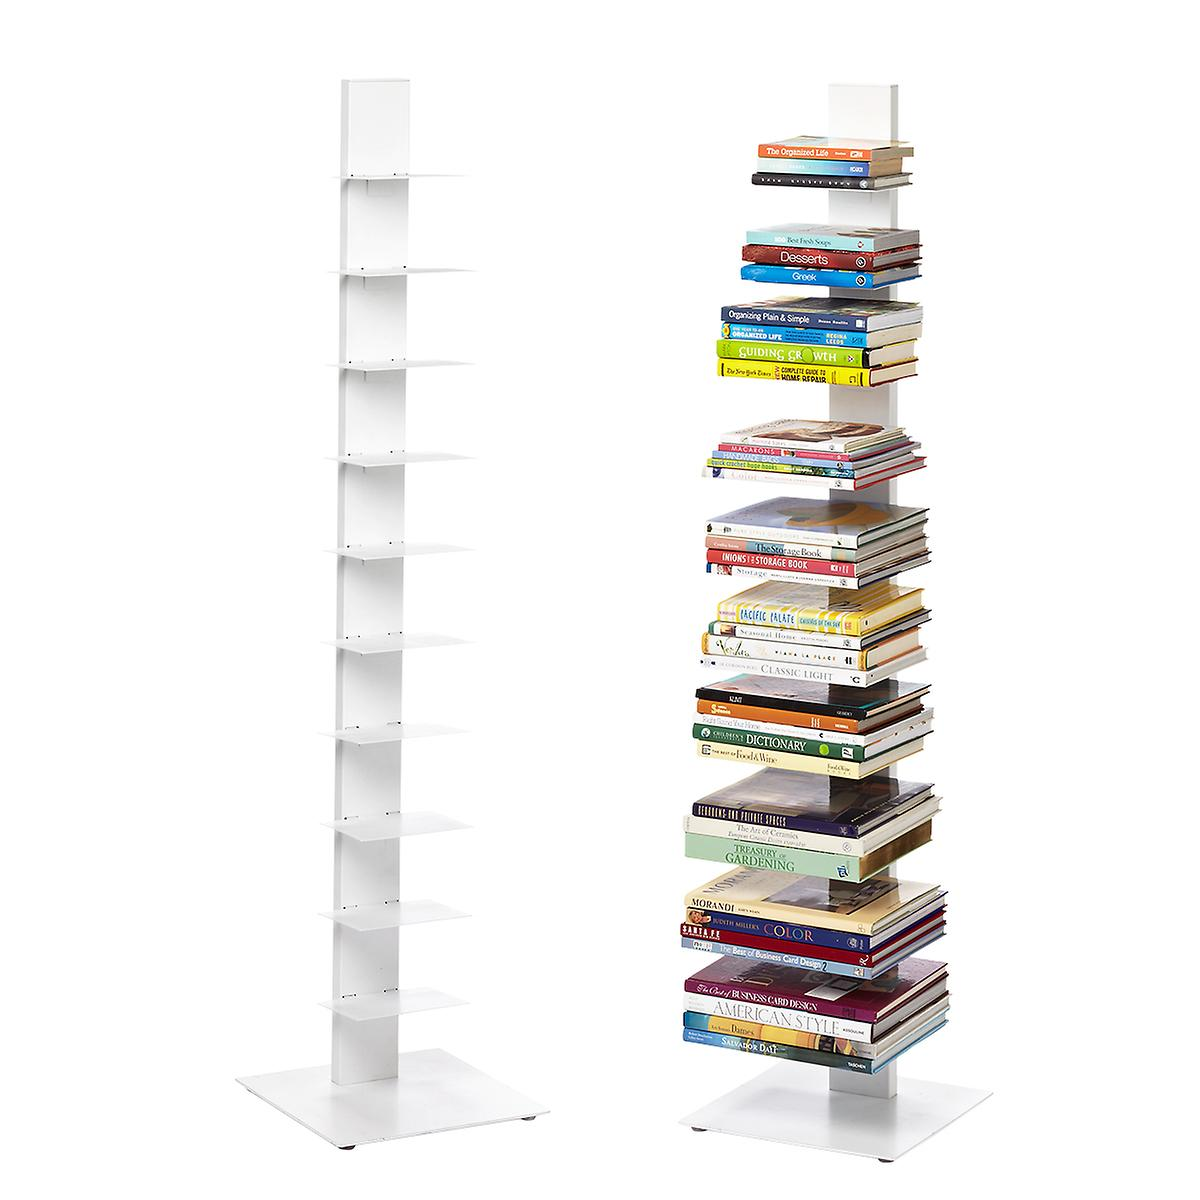 sapien off online bookcase tall second hand wood buy storage